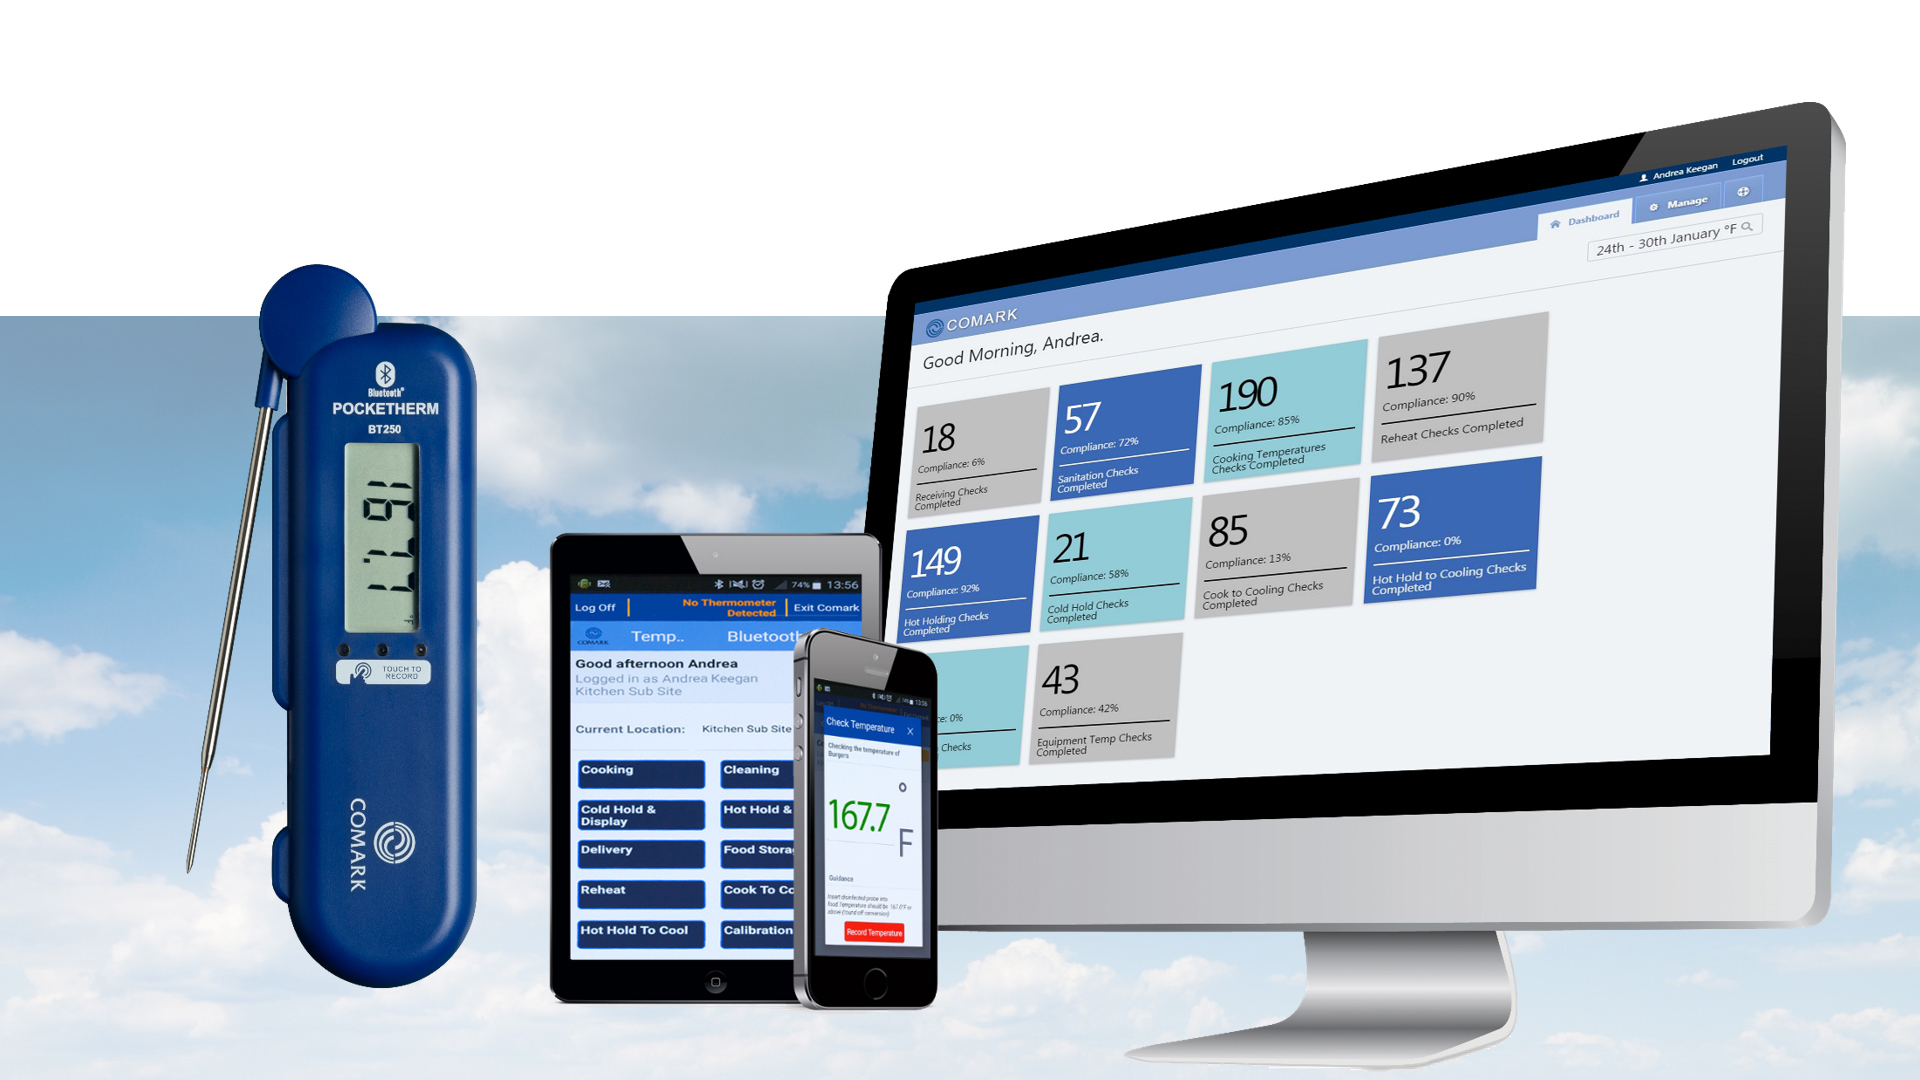 Bluetooth Pocketherm Folding Thermometer and Kitchen Checks Pro App (Photo: Business Wire)